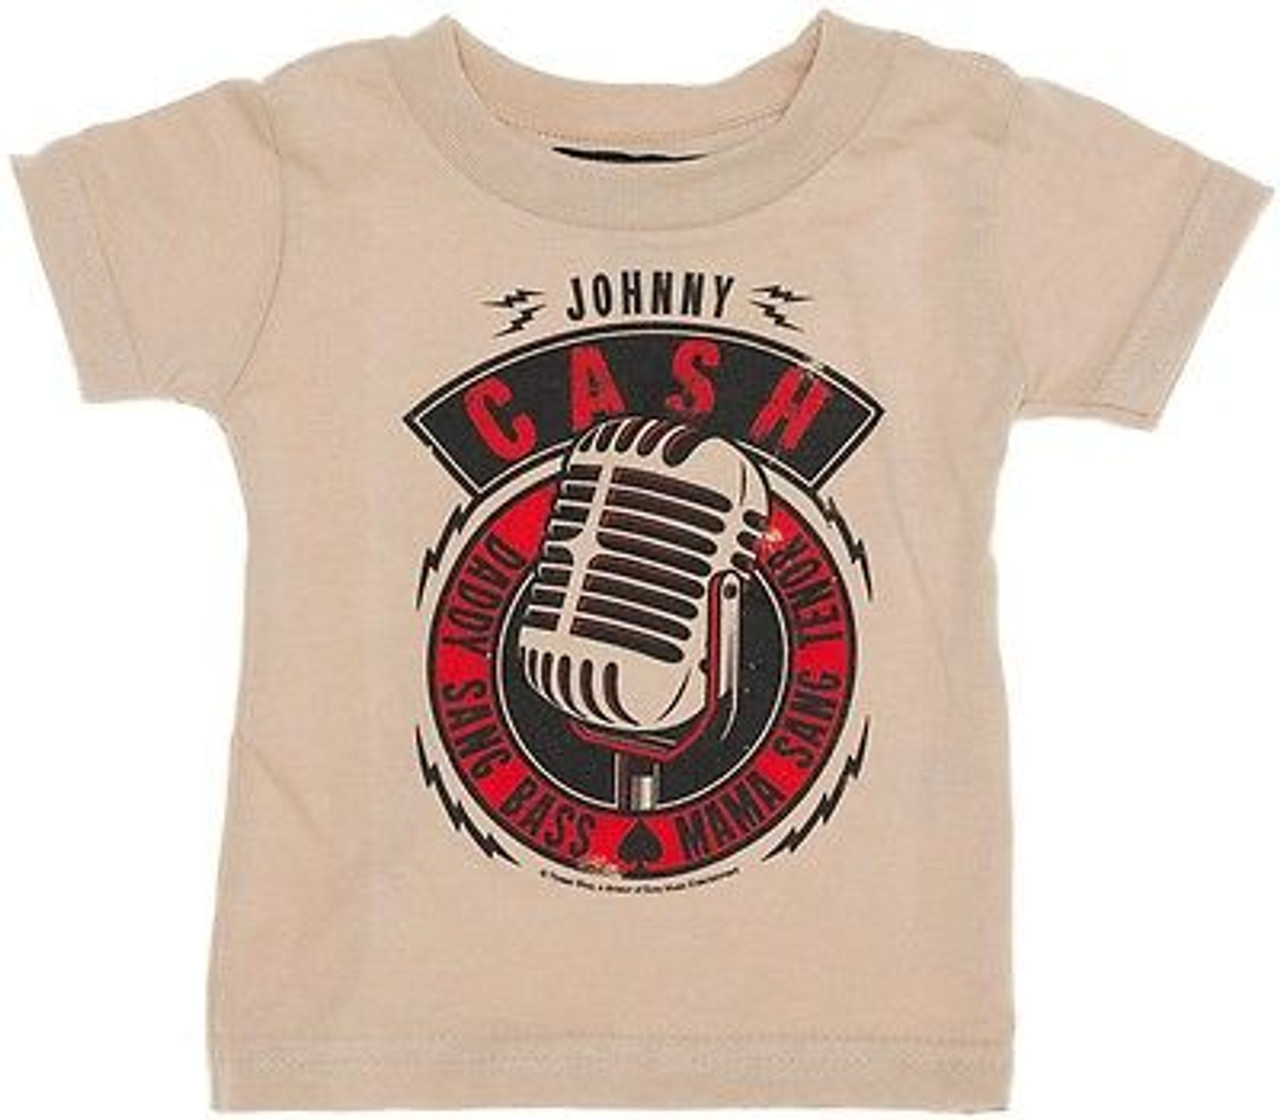 ACDC LET THERE BE ROCK MUSIC GUITAR METAL BAND PUNK INFANT KIDS BOYS CHILD 2T-5T